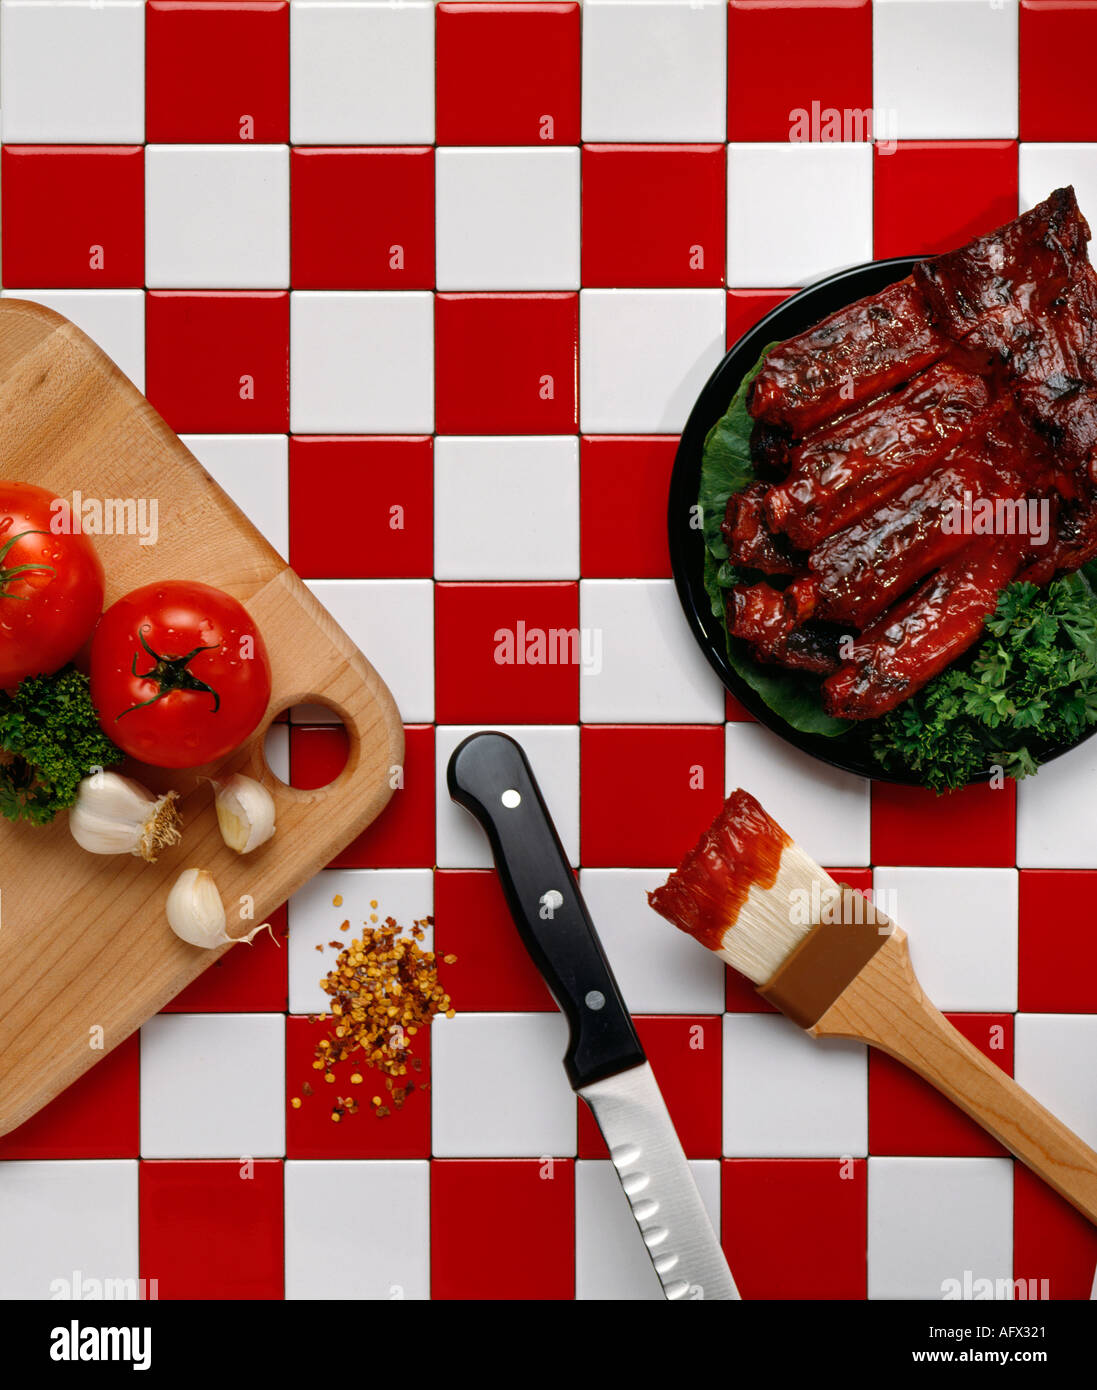 bbq barbecue ribs on red and white checker tile food Stock Photo